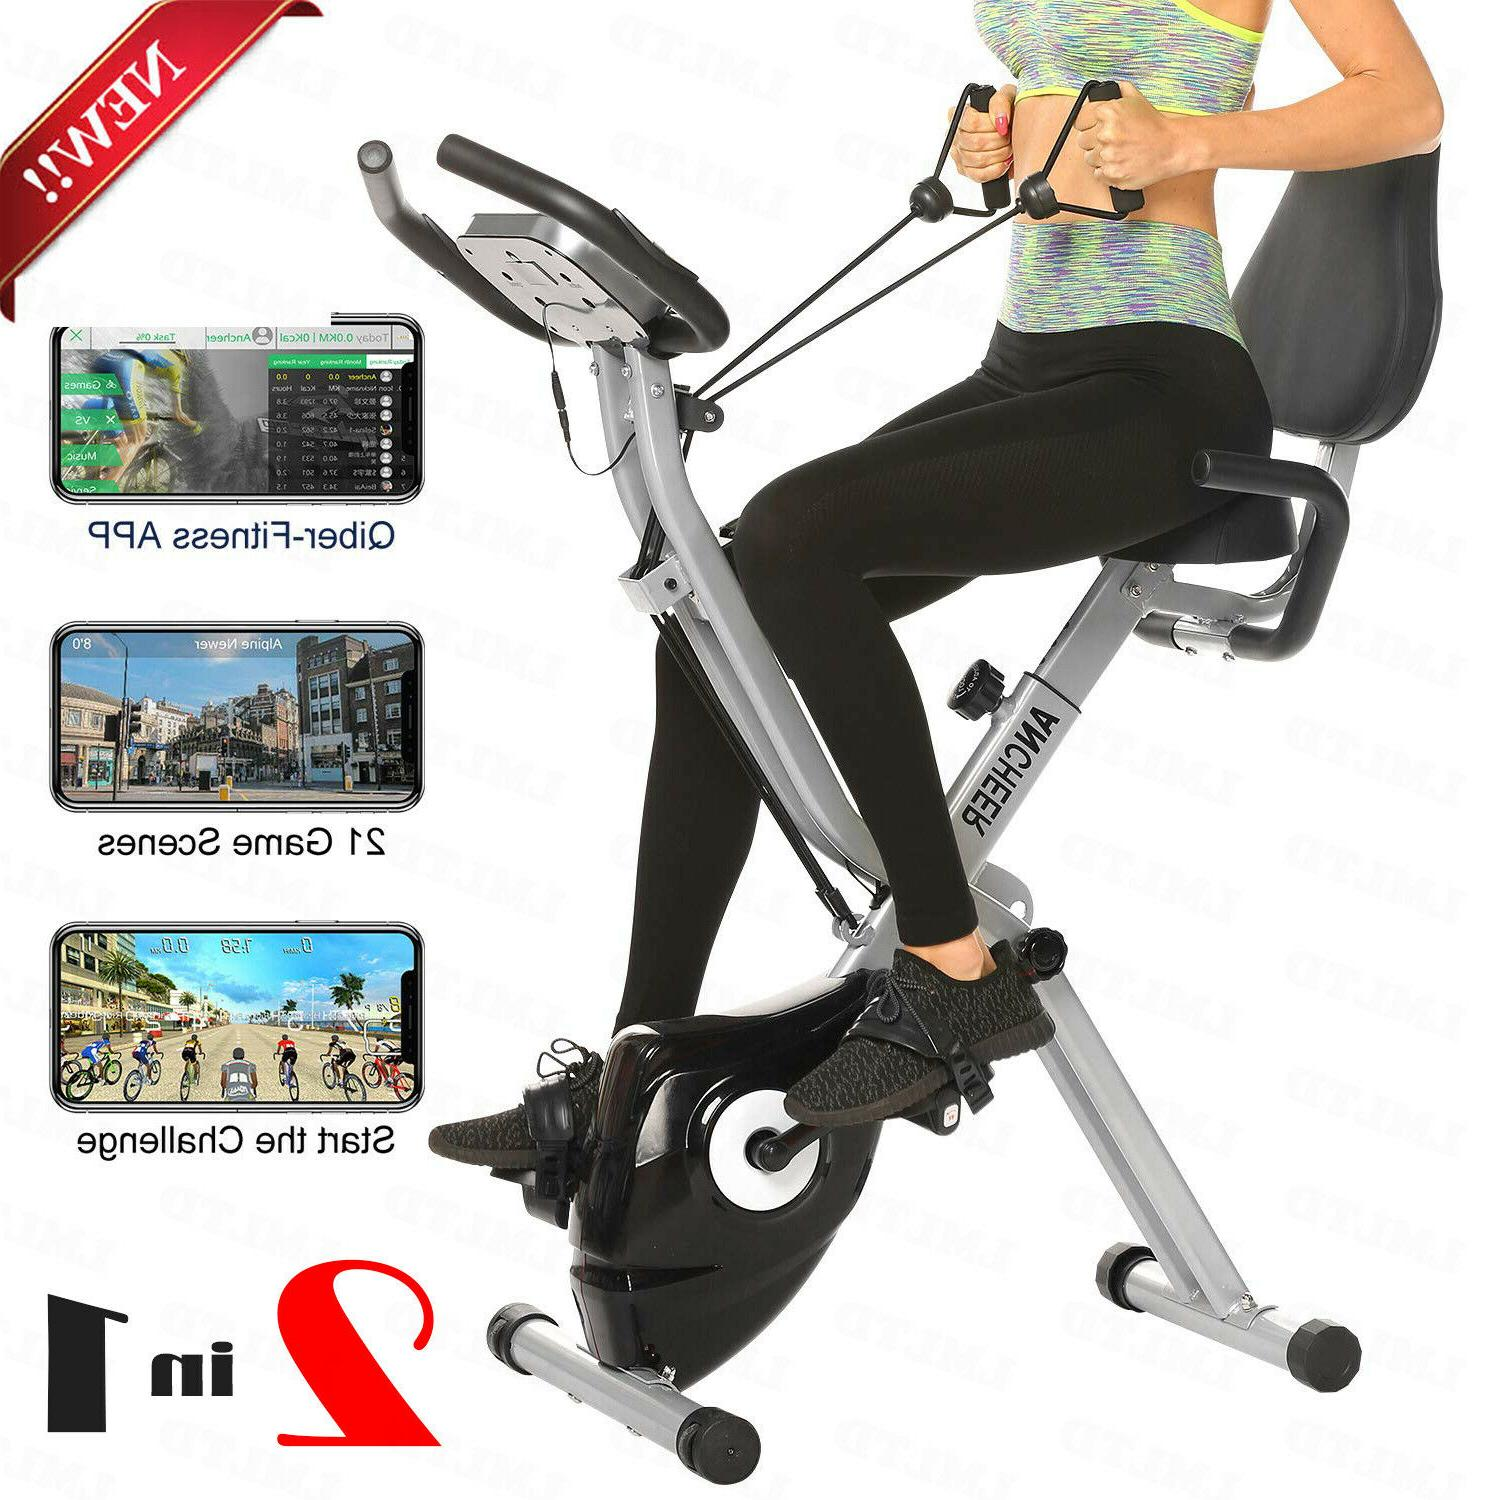 ANCHEER Folding Exercise Bike with APP Simulation Game, Indo